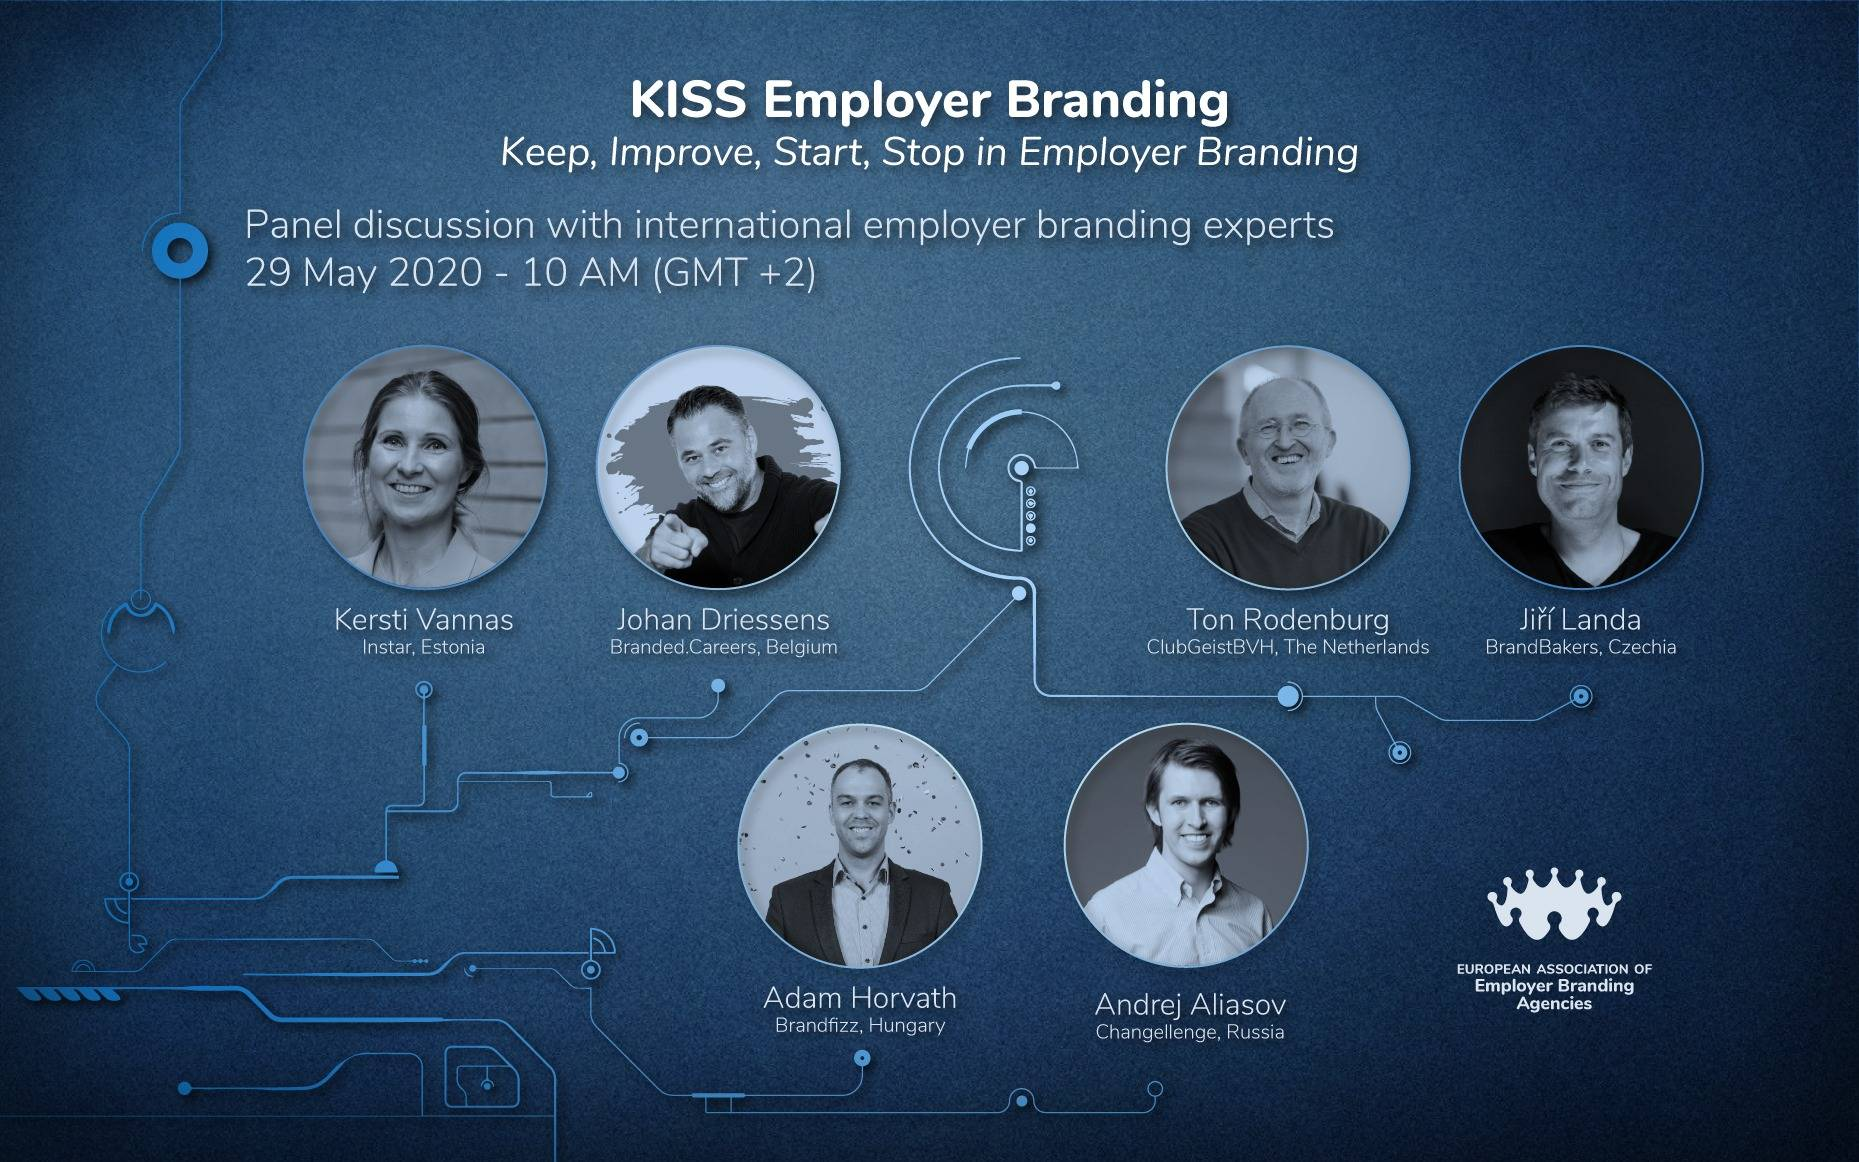 KISS Employer Branding! What to keep, improve, stop and start?